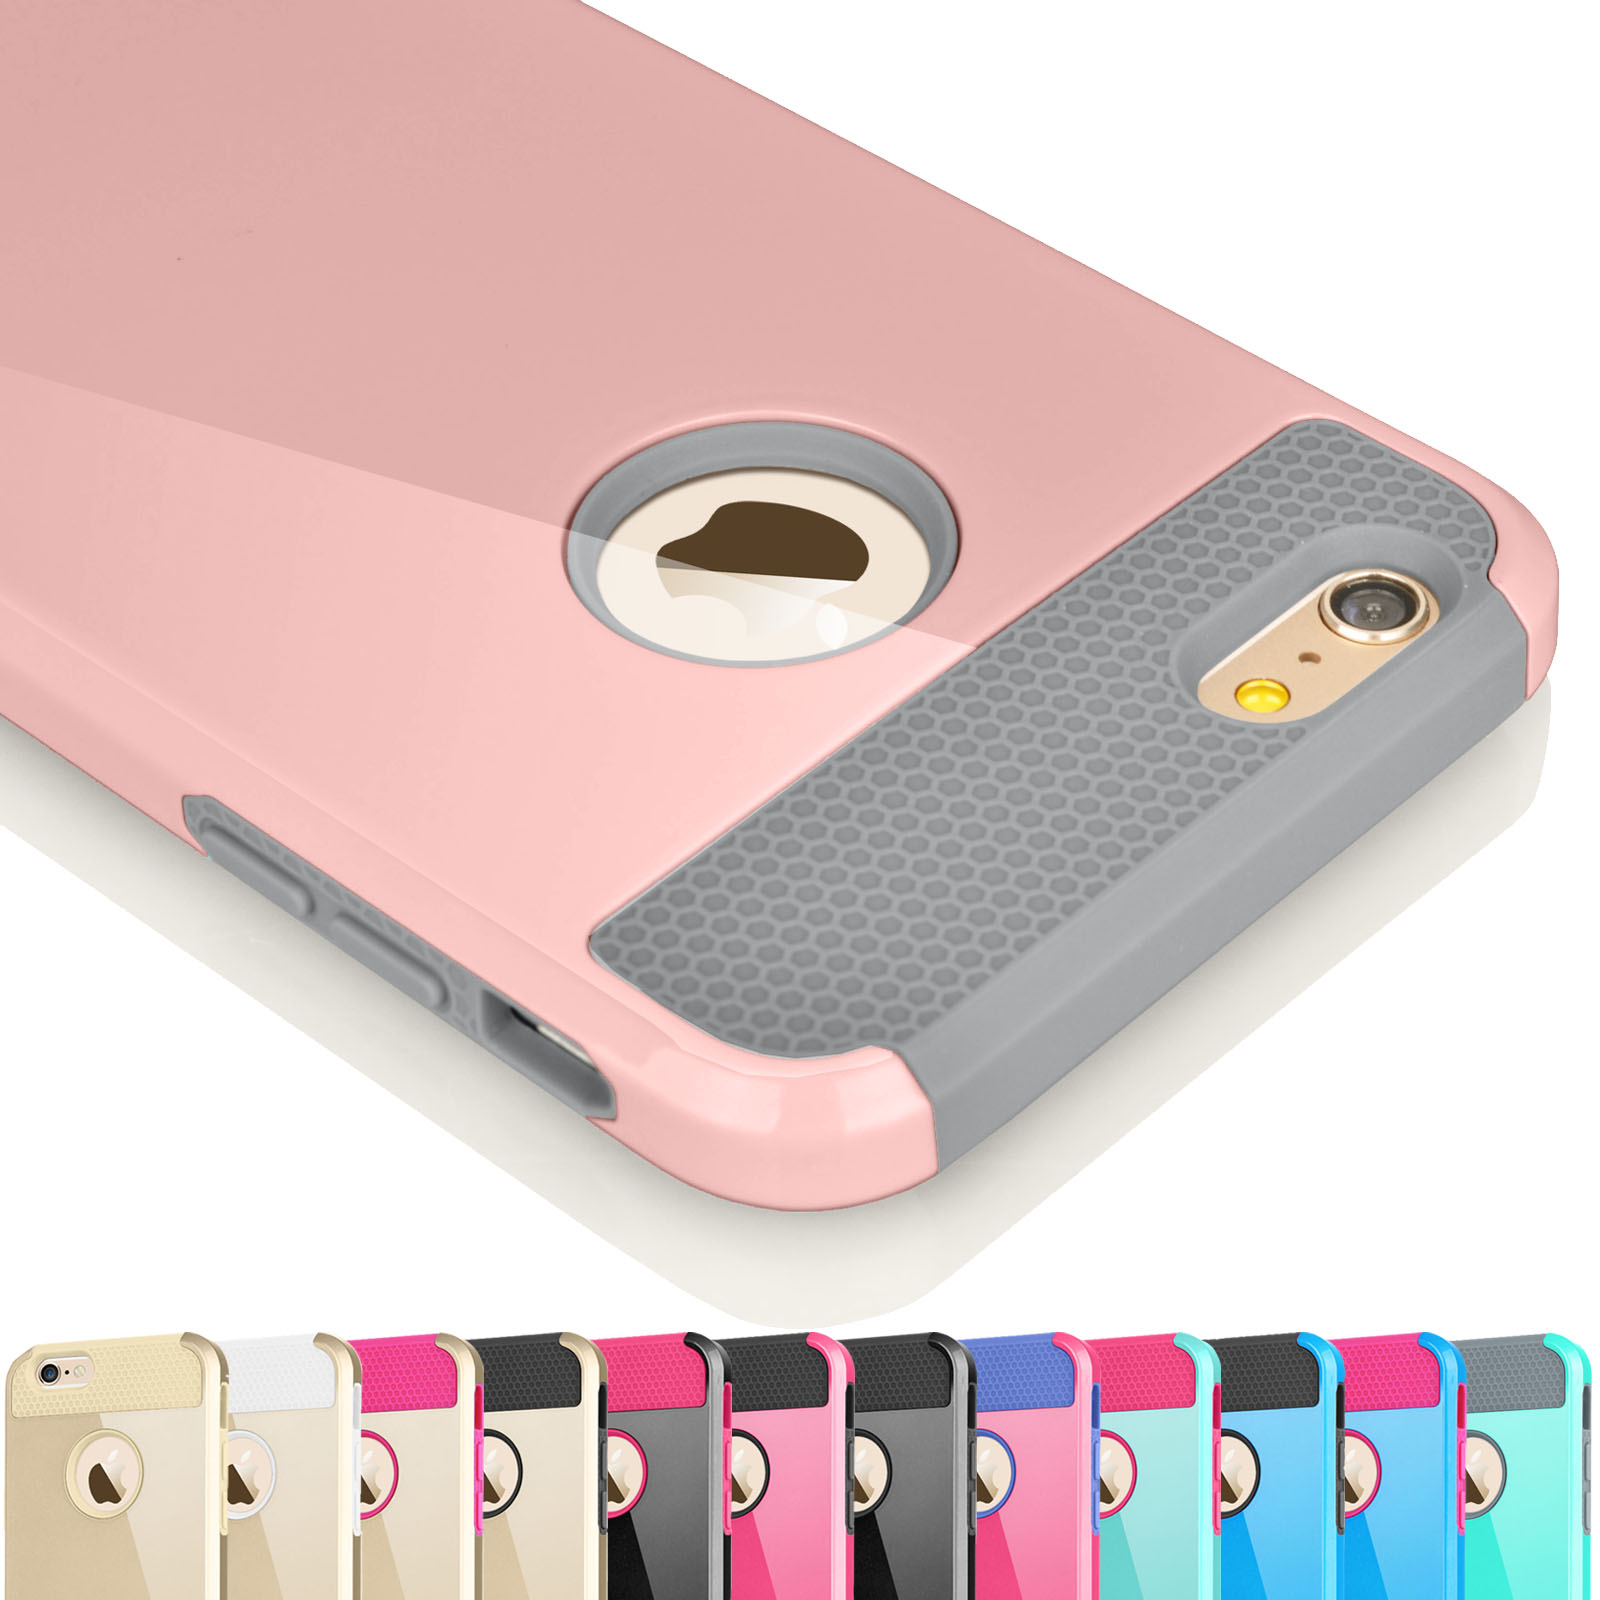 timeless design 729f0 e312f iPhone 6S Case, iPhone 6 Case, Njjex [Rose Gold] Hybrid Shock Absorbing  Impact Defender Slim Hard Case Cover Plastic Shell Outer +TPU Rubber  Silicone ...